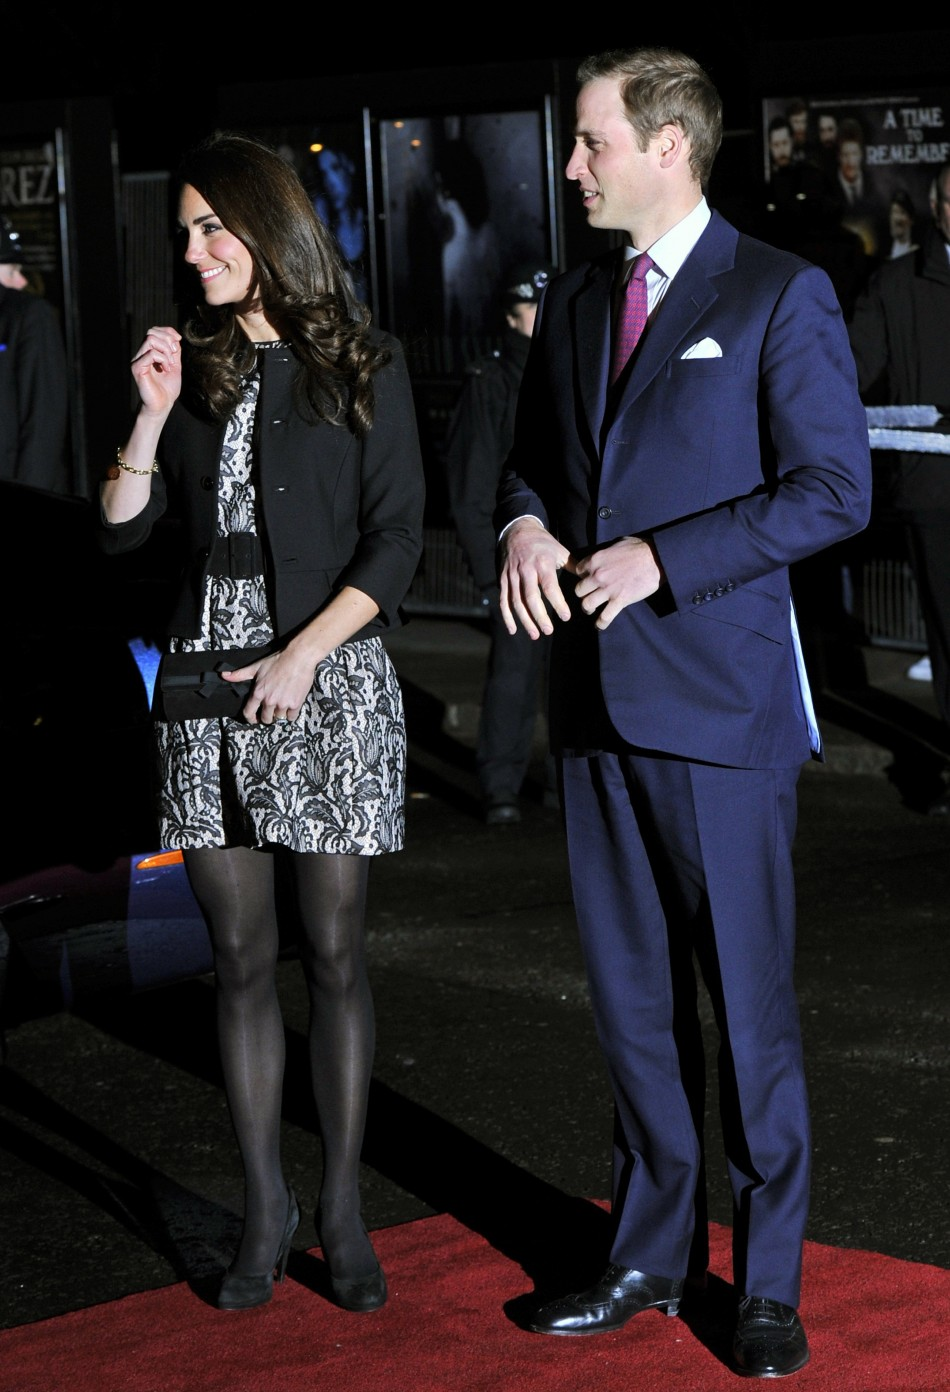 Britain's Kate Middleton, Duchess of Cambridge, arrives with her husband Prince William for a charity concert at the Royal Albert Hall in London